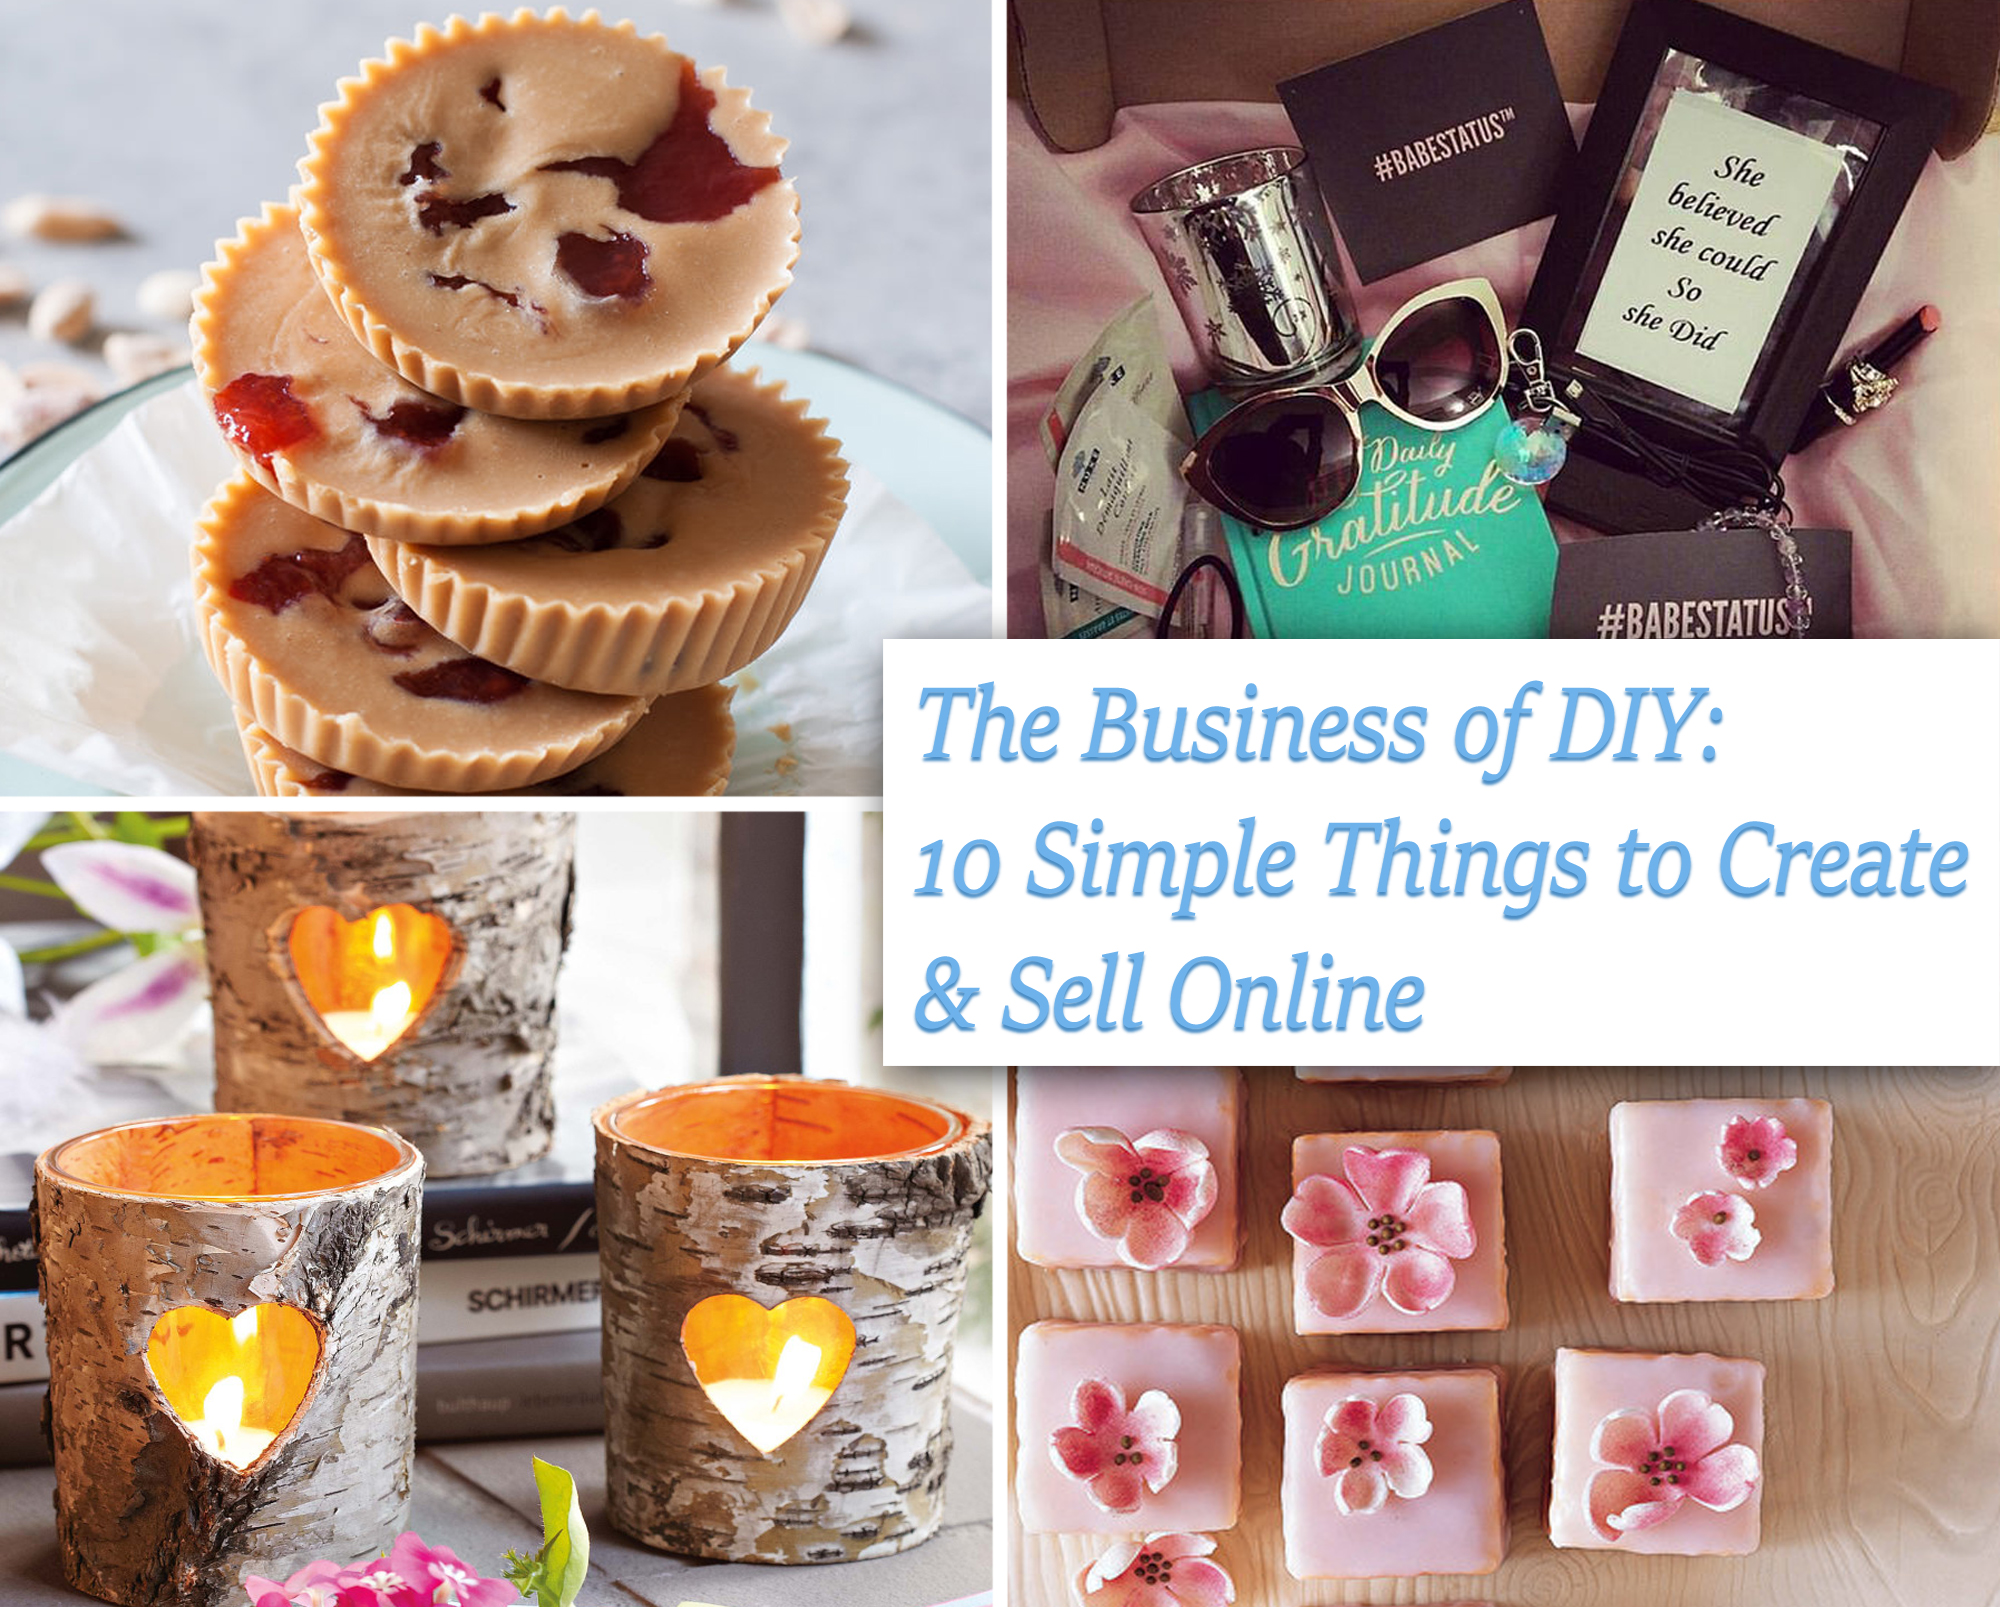 The business of DIY: 10 simple things to create and sell online